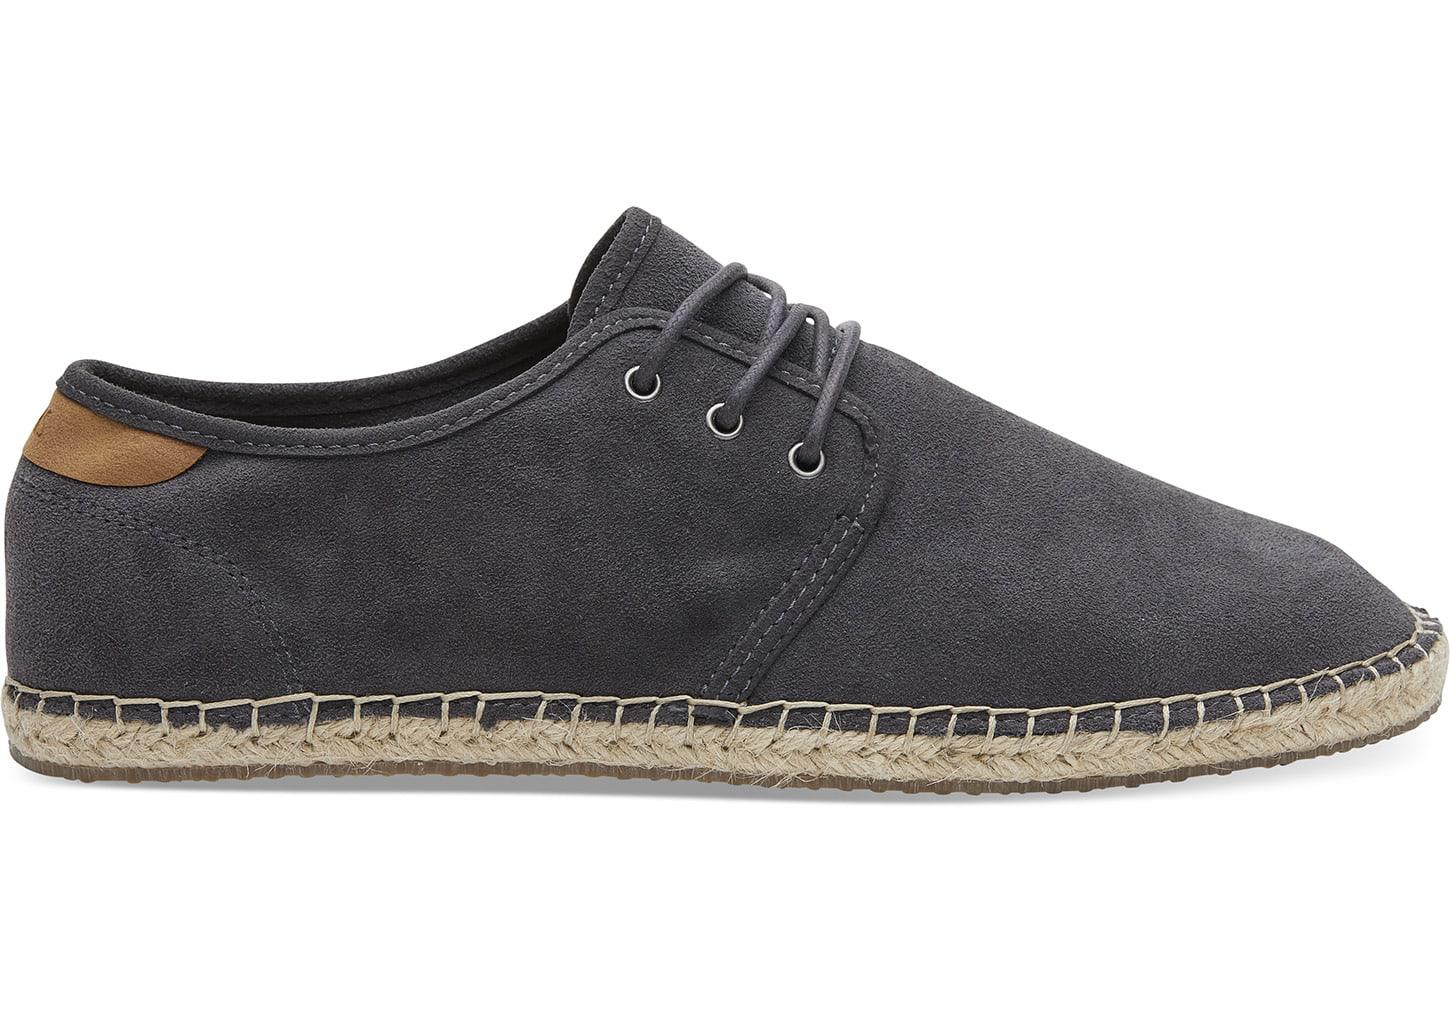 25c38e54185 Lyst - TOMS Forged Iron Grey Suede Men s Diego Sneakers in Gray for Men